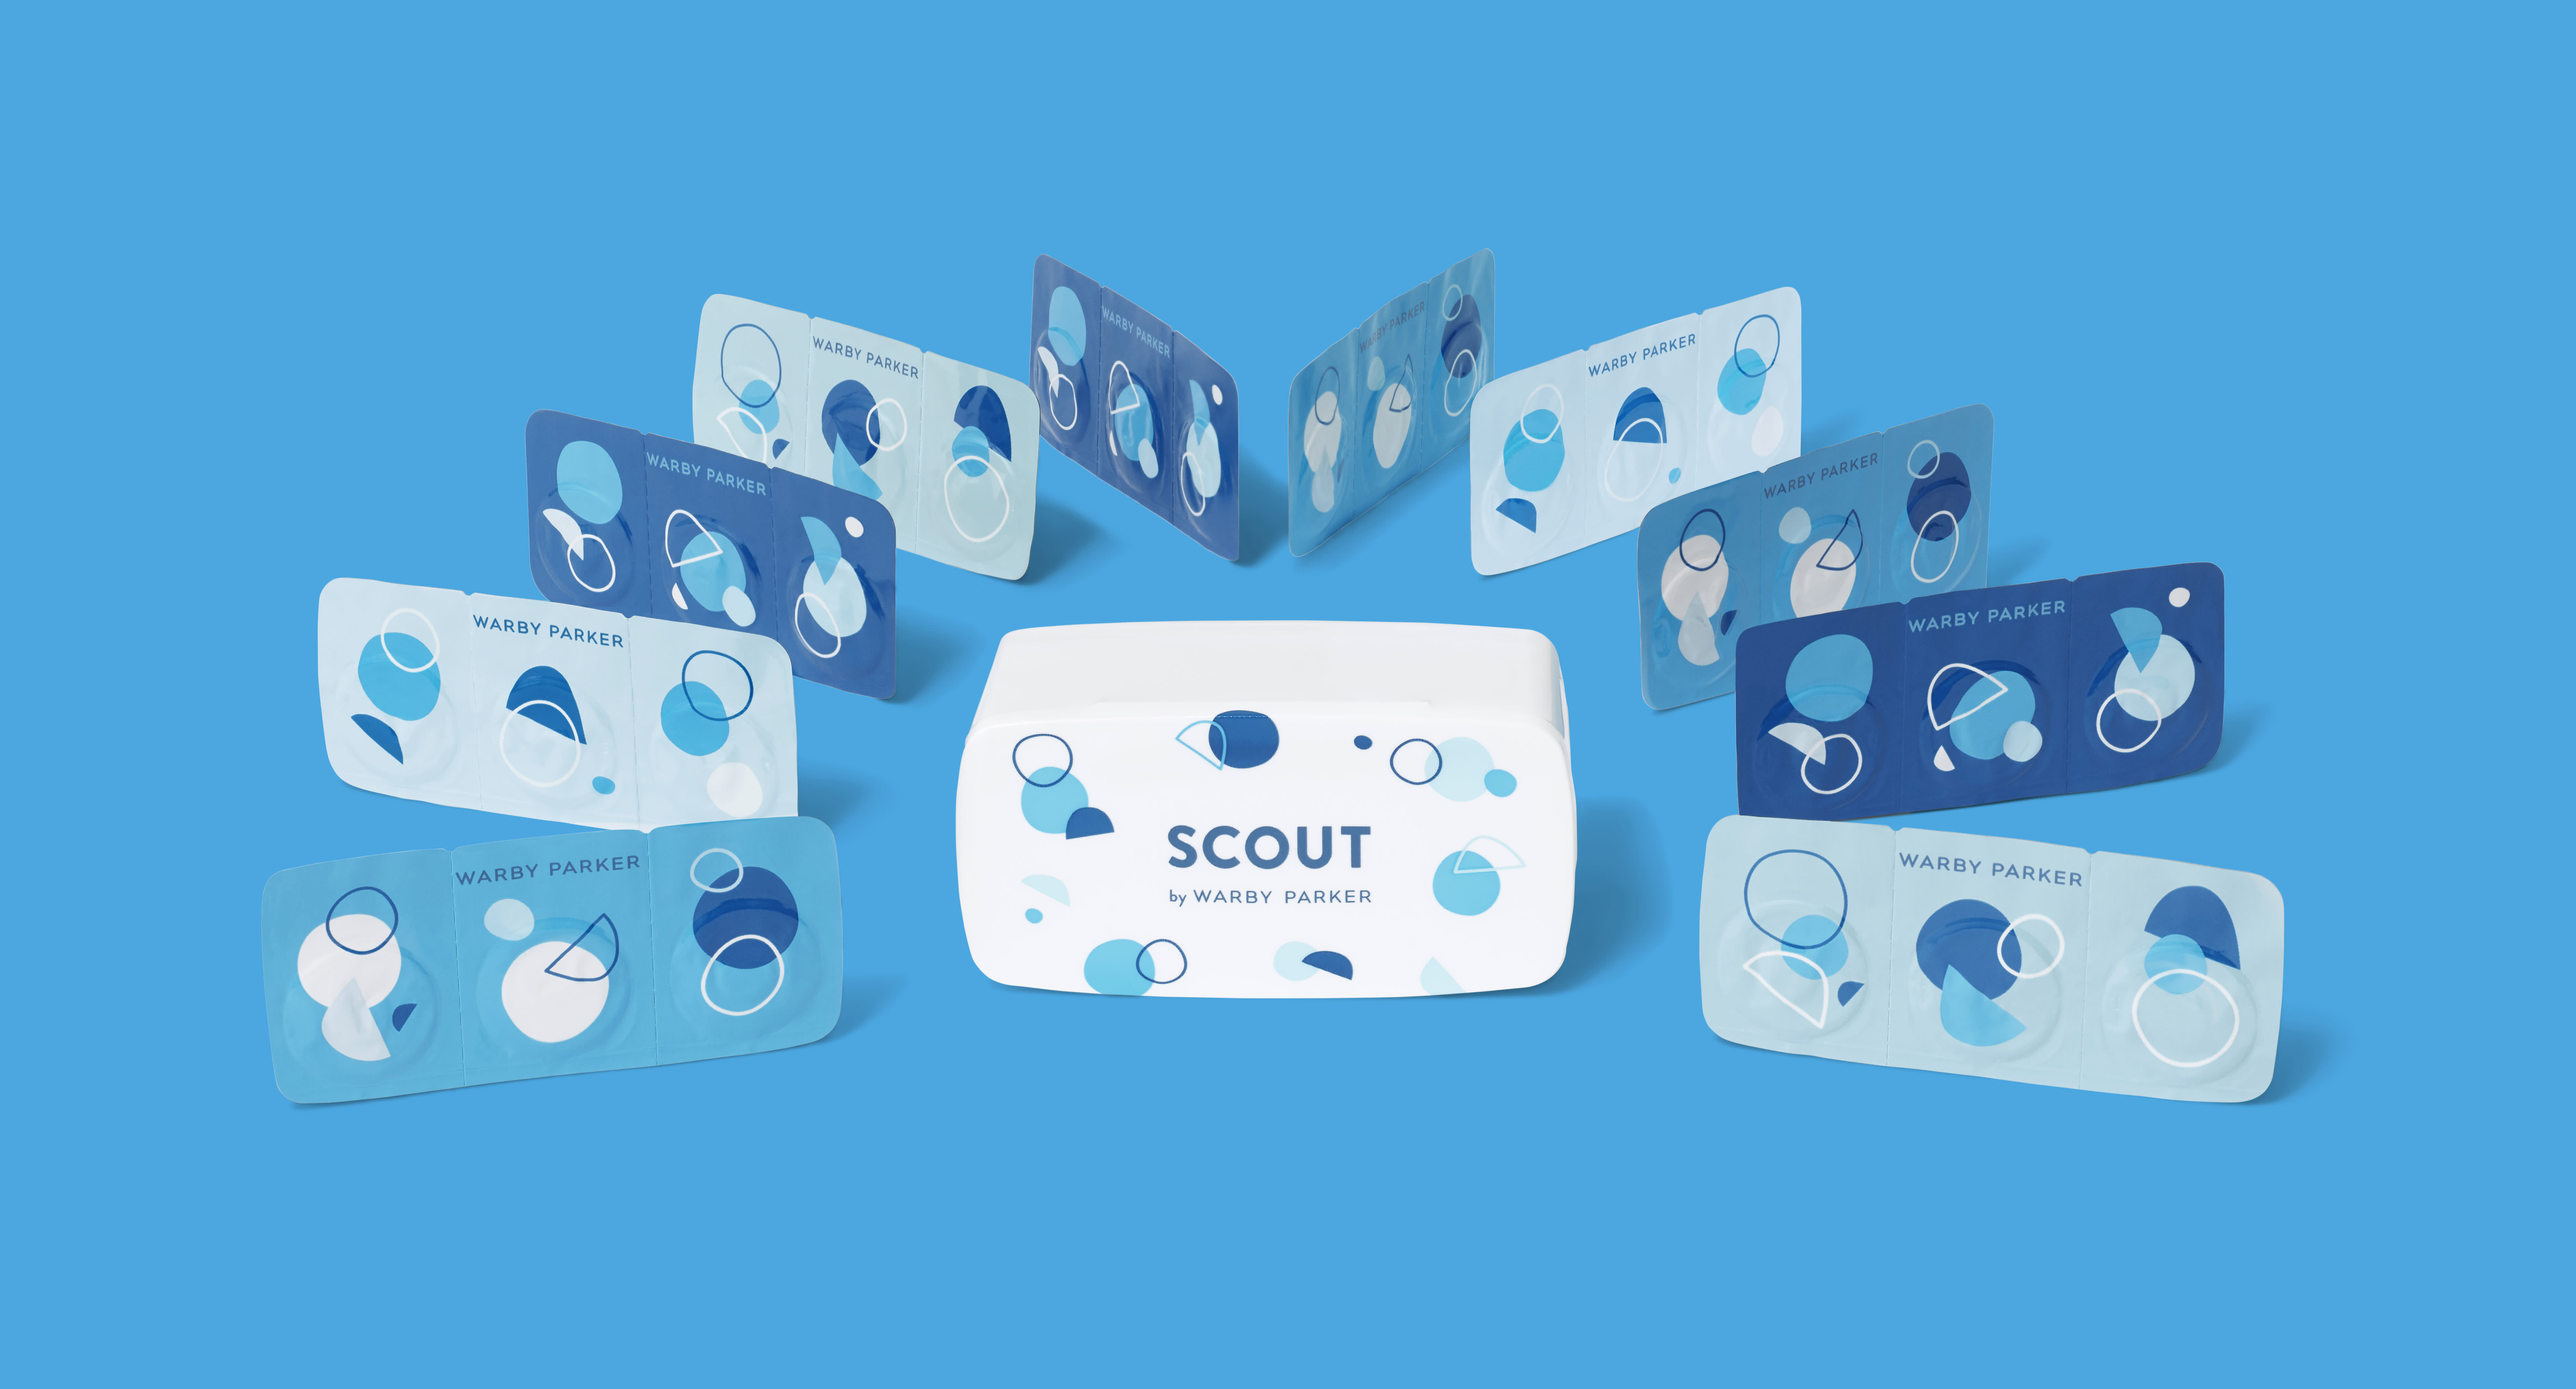 Warby Parker is launching Scout, its own line of contact lenses